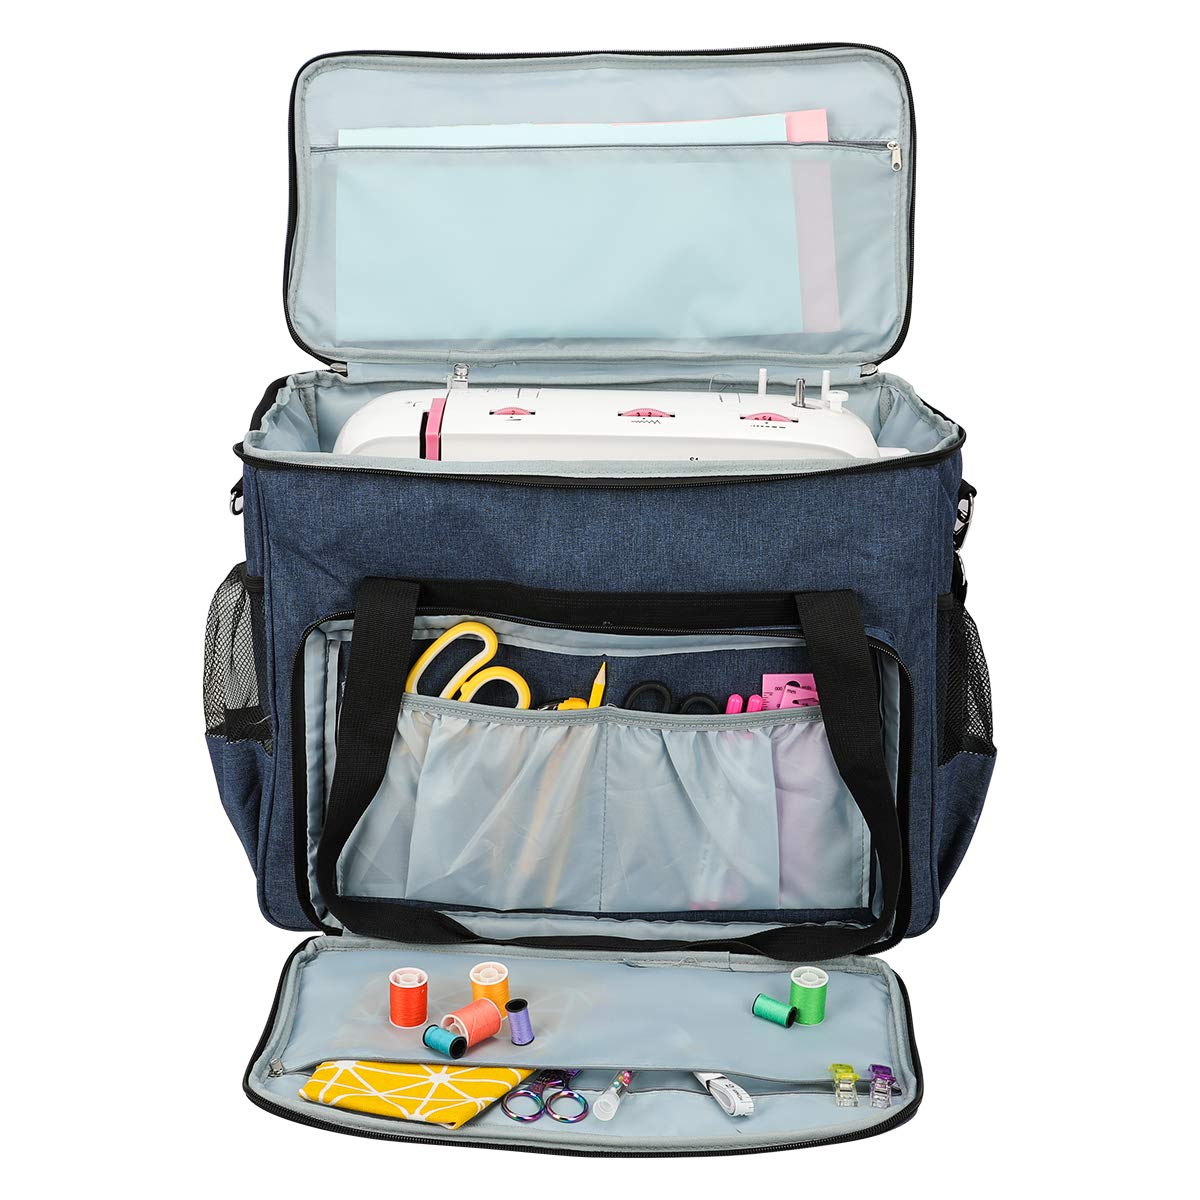 Multi-functional Sewing Machine Storage Bag Large Capacity Sewing Machine Carrying Case Oxford Travel Portable Sewing Machine Tote Sewing Tools Needlework Hand Bags Sewing Accessories Organizer Grey